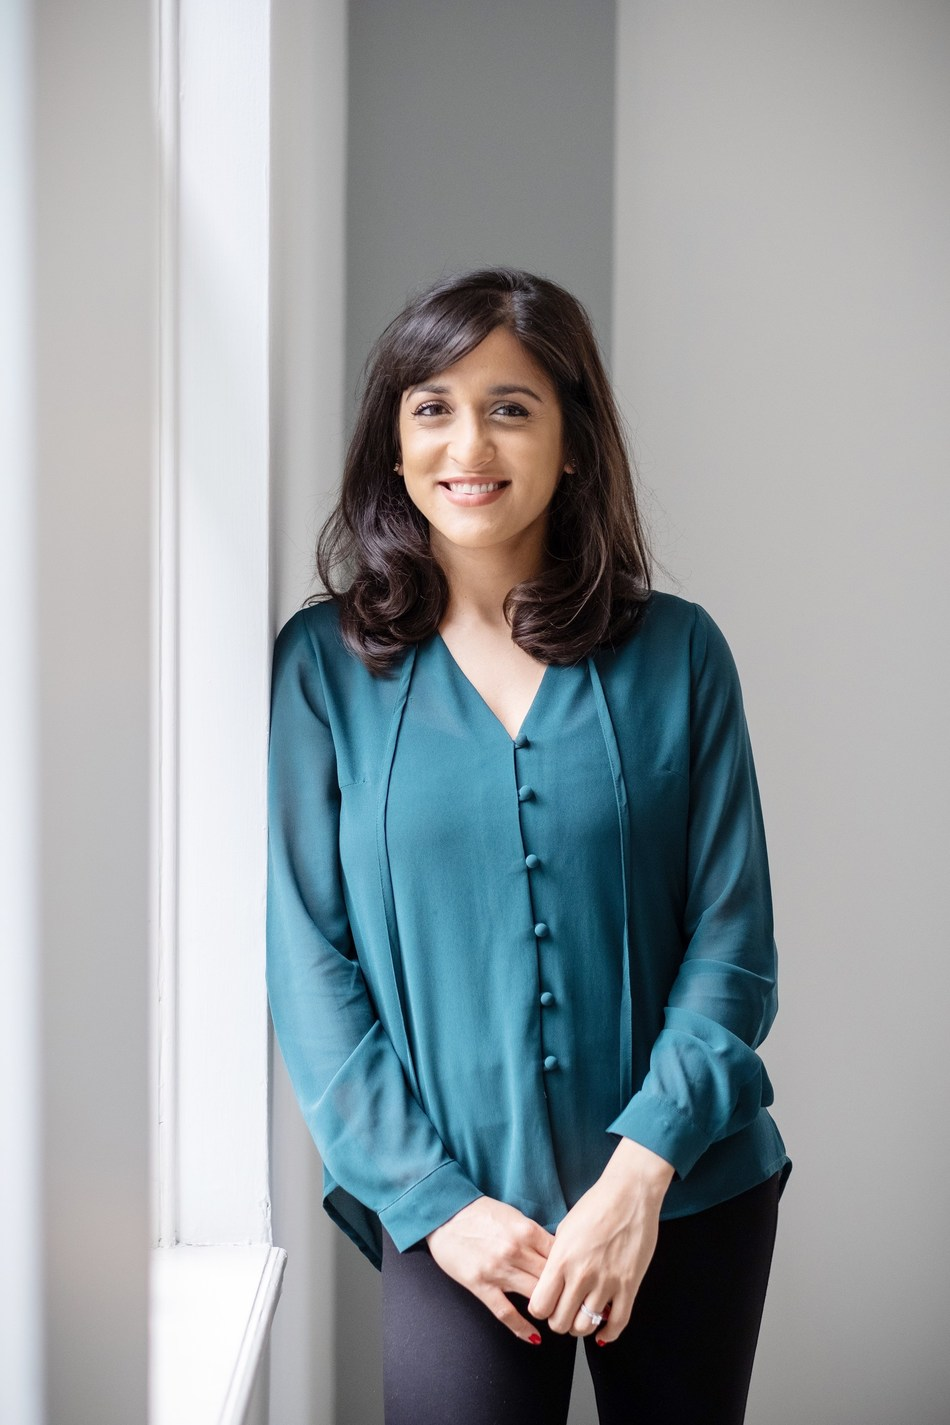 Anurati Mathur, Founder and CEO of Sempre Health